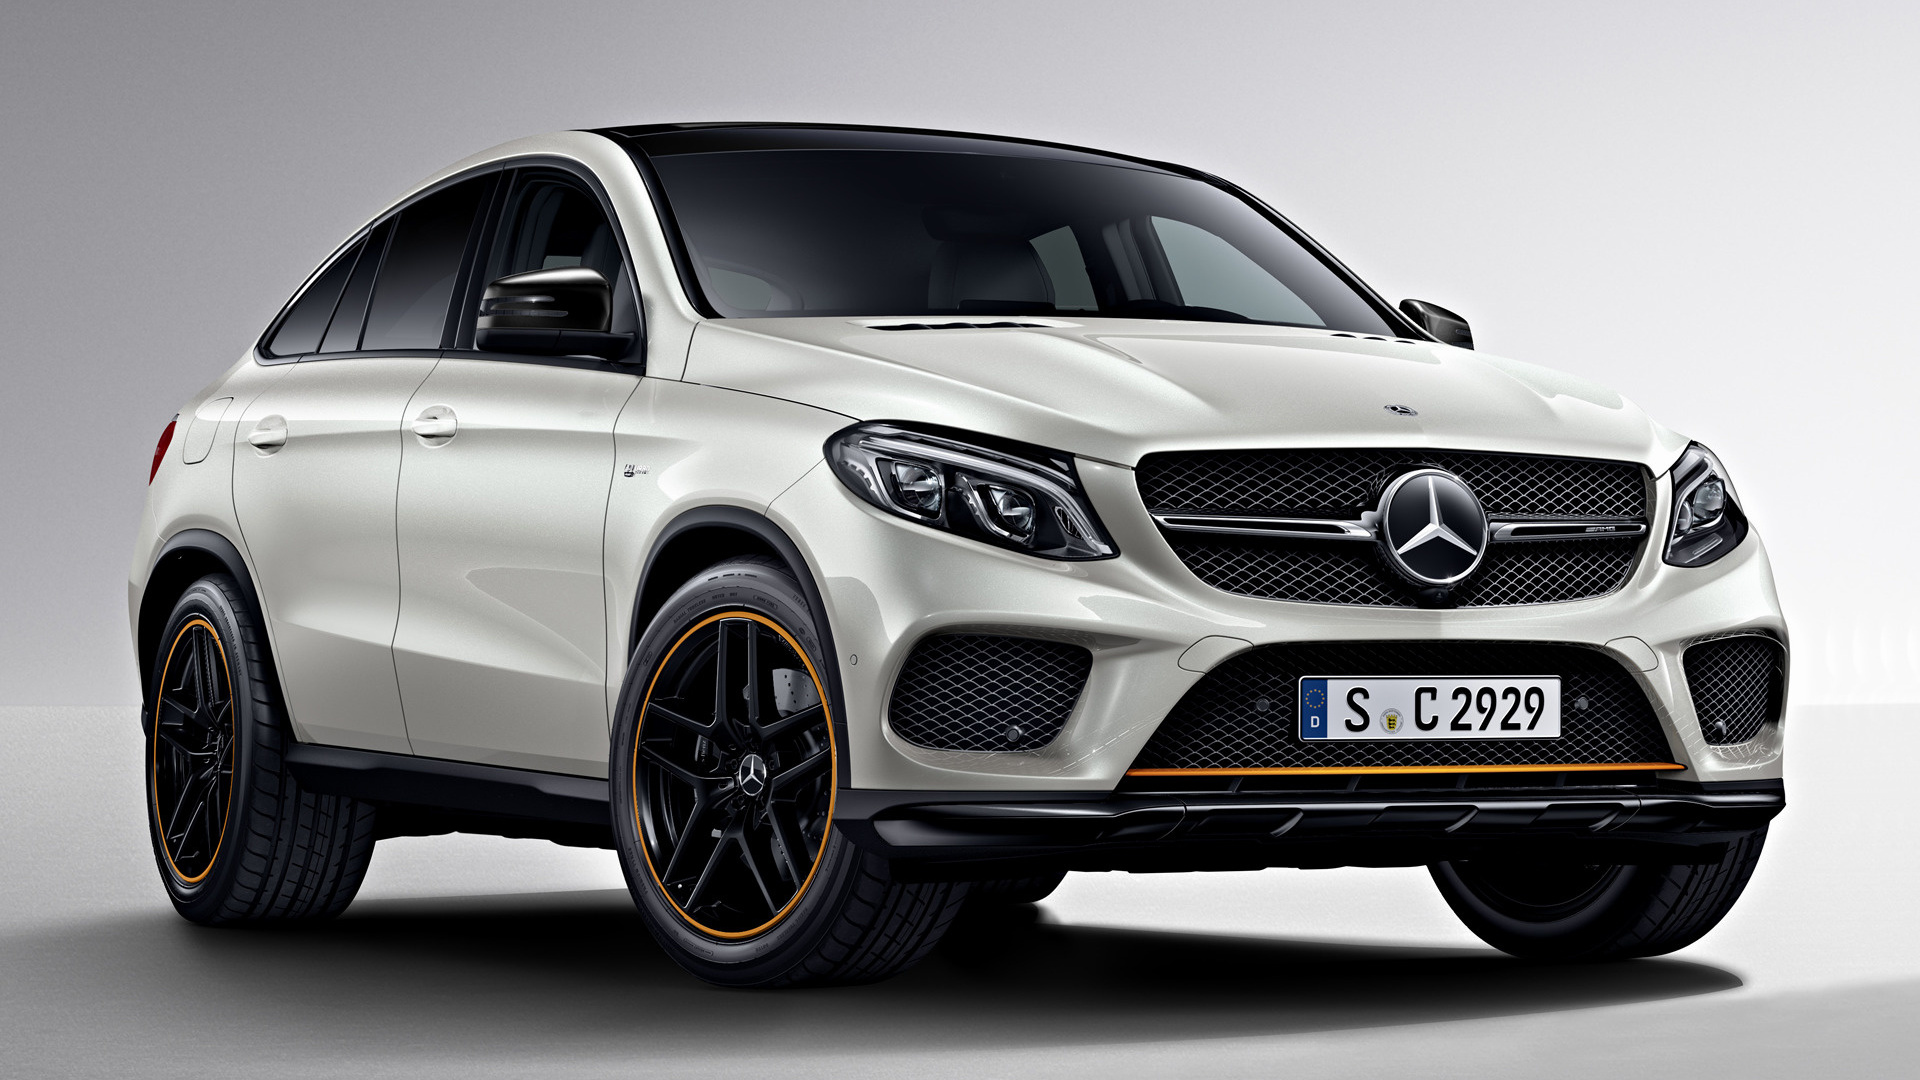 2017 mercedes amg gle 43 coupe orangeart edition wallpapers and hd images car pixel. Black Bedroom Furniture Sets. Home Design Ideas